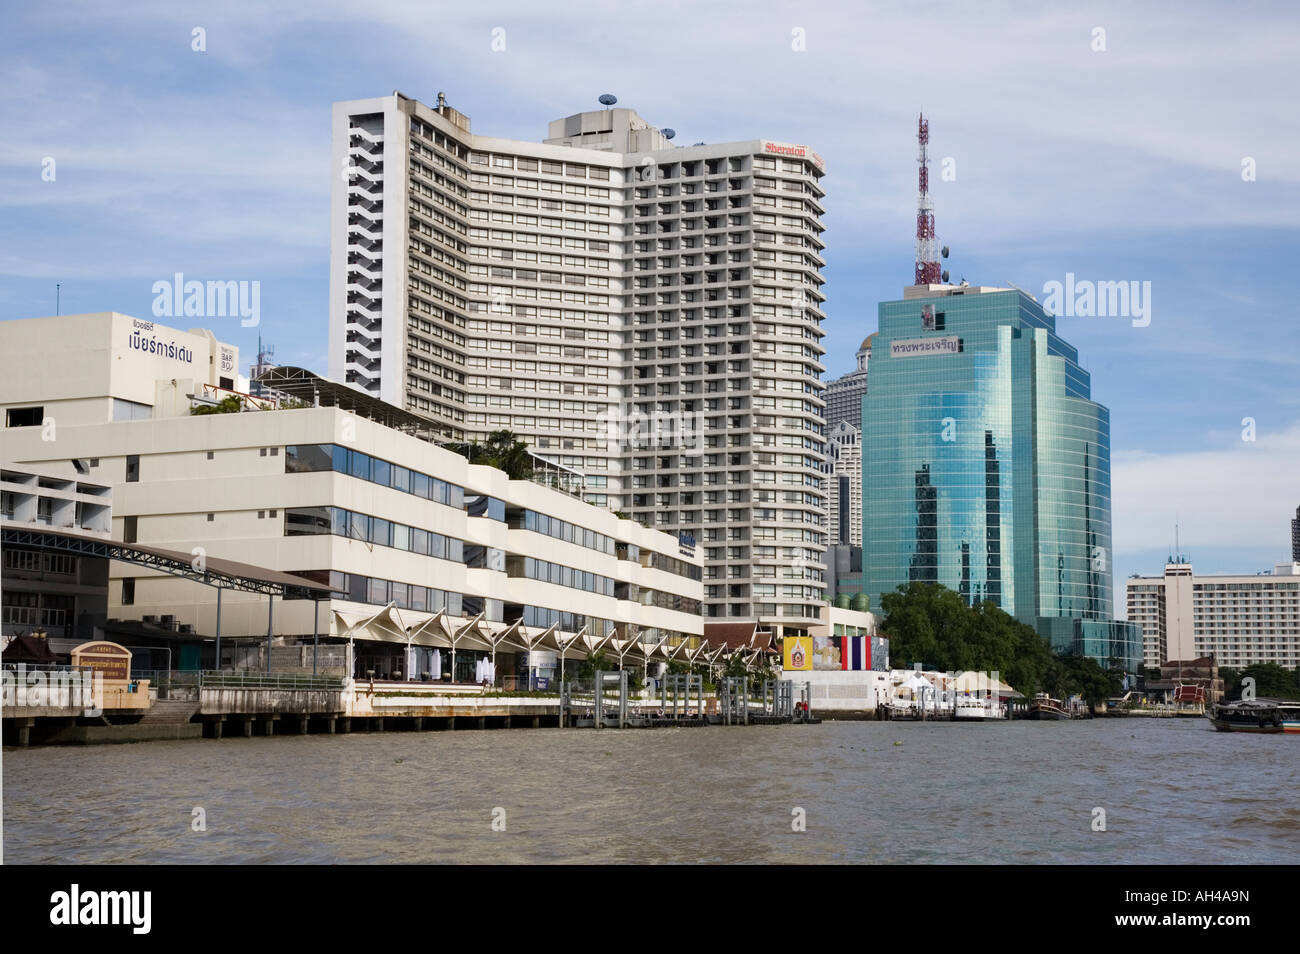 Royal Orchid Sheraton Hotel   Towers hotel seen from a boat on the Chao  Phraya river 868560f05b